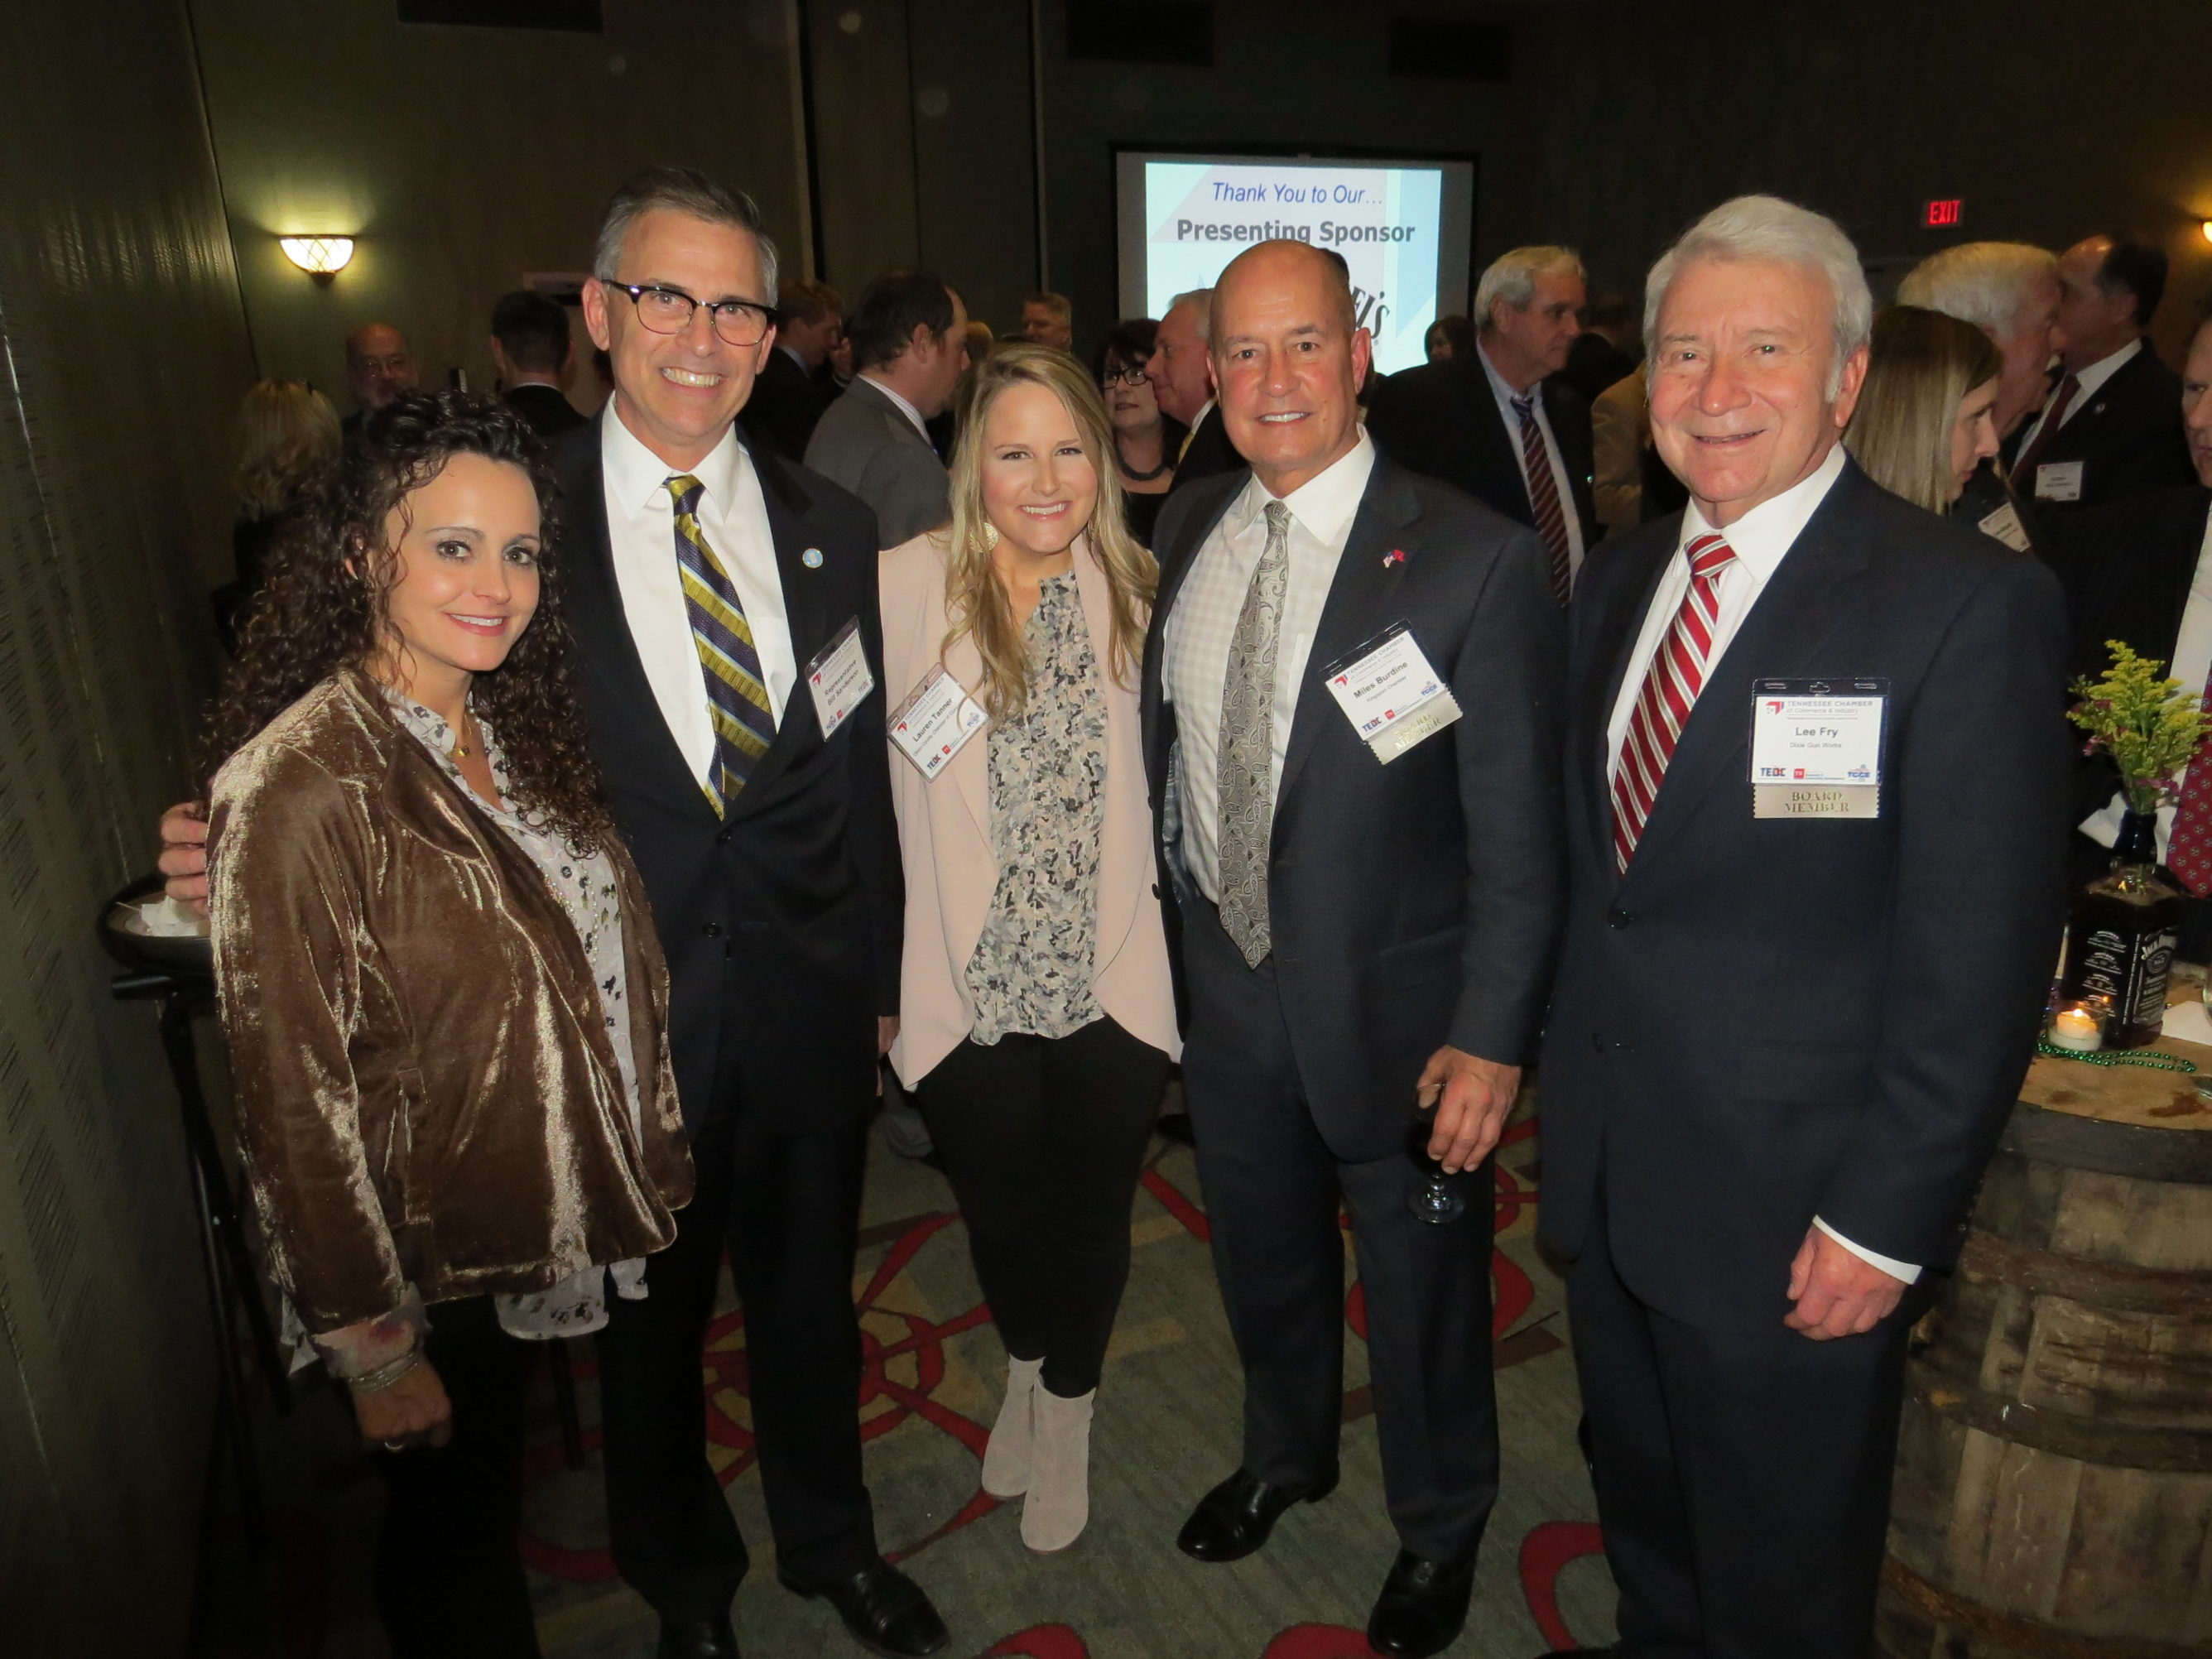 TCCE Winter Conference & Legislative Reception